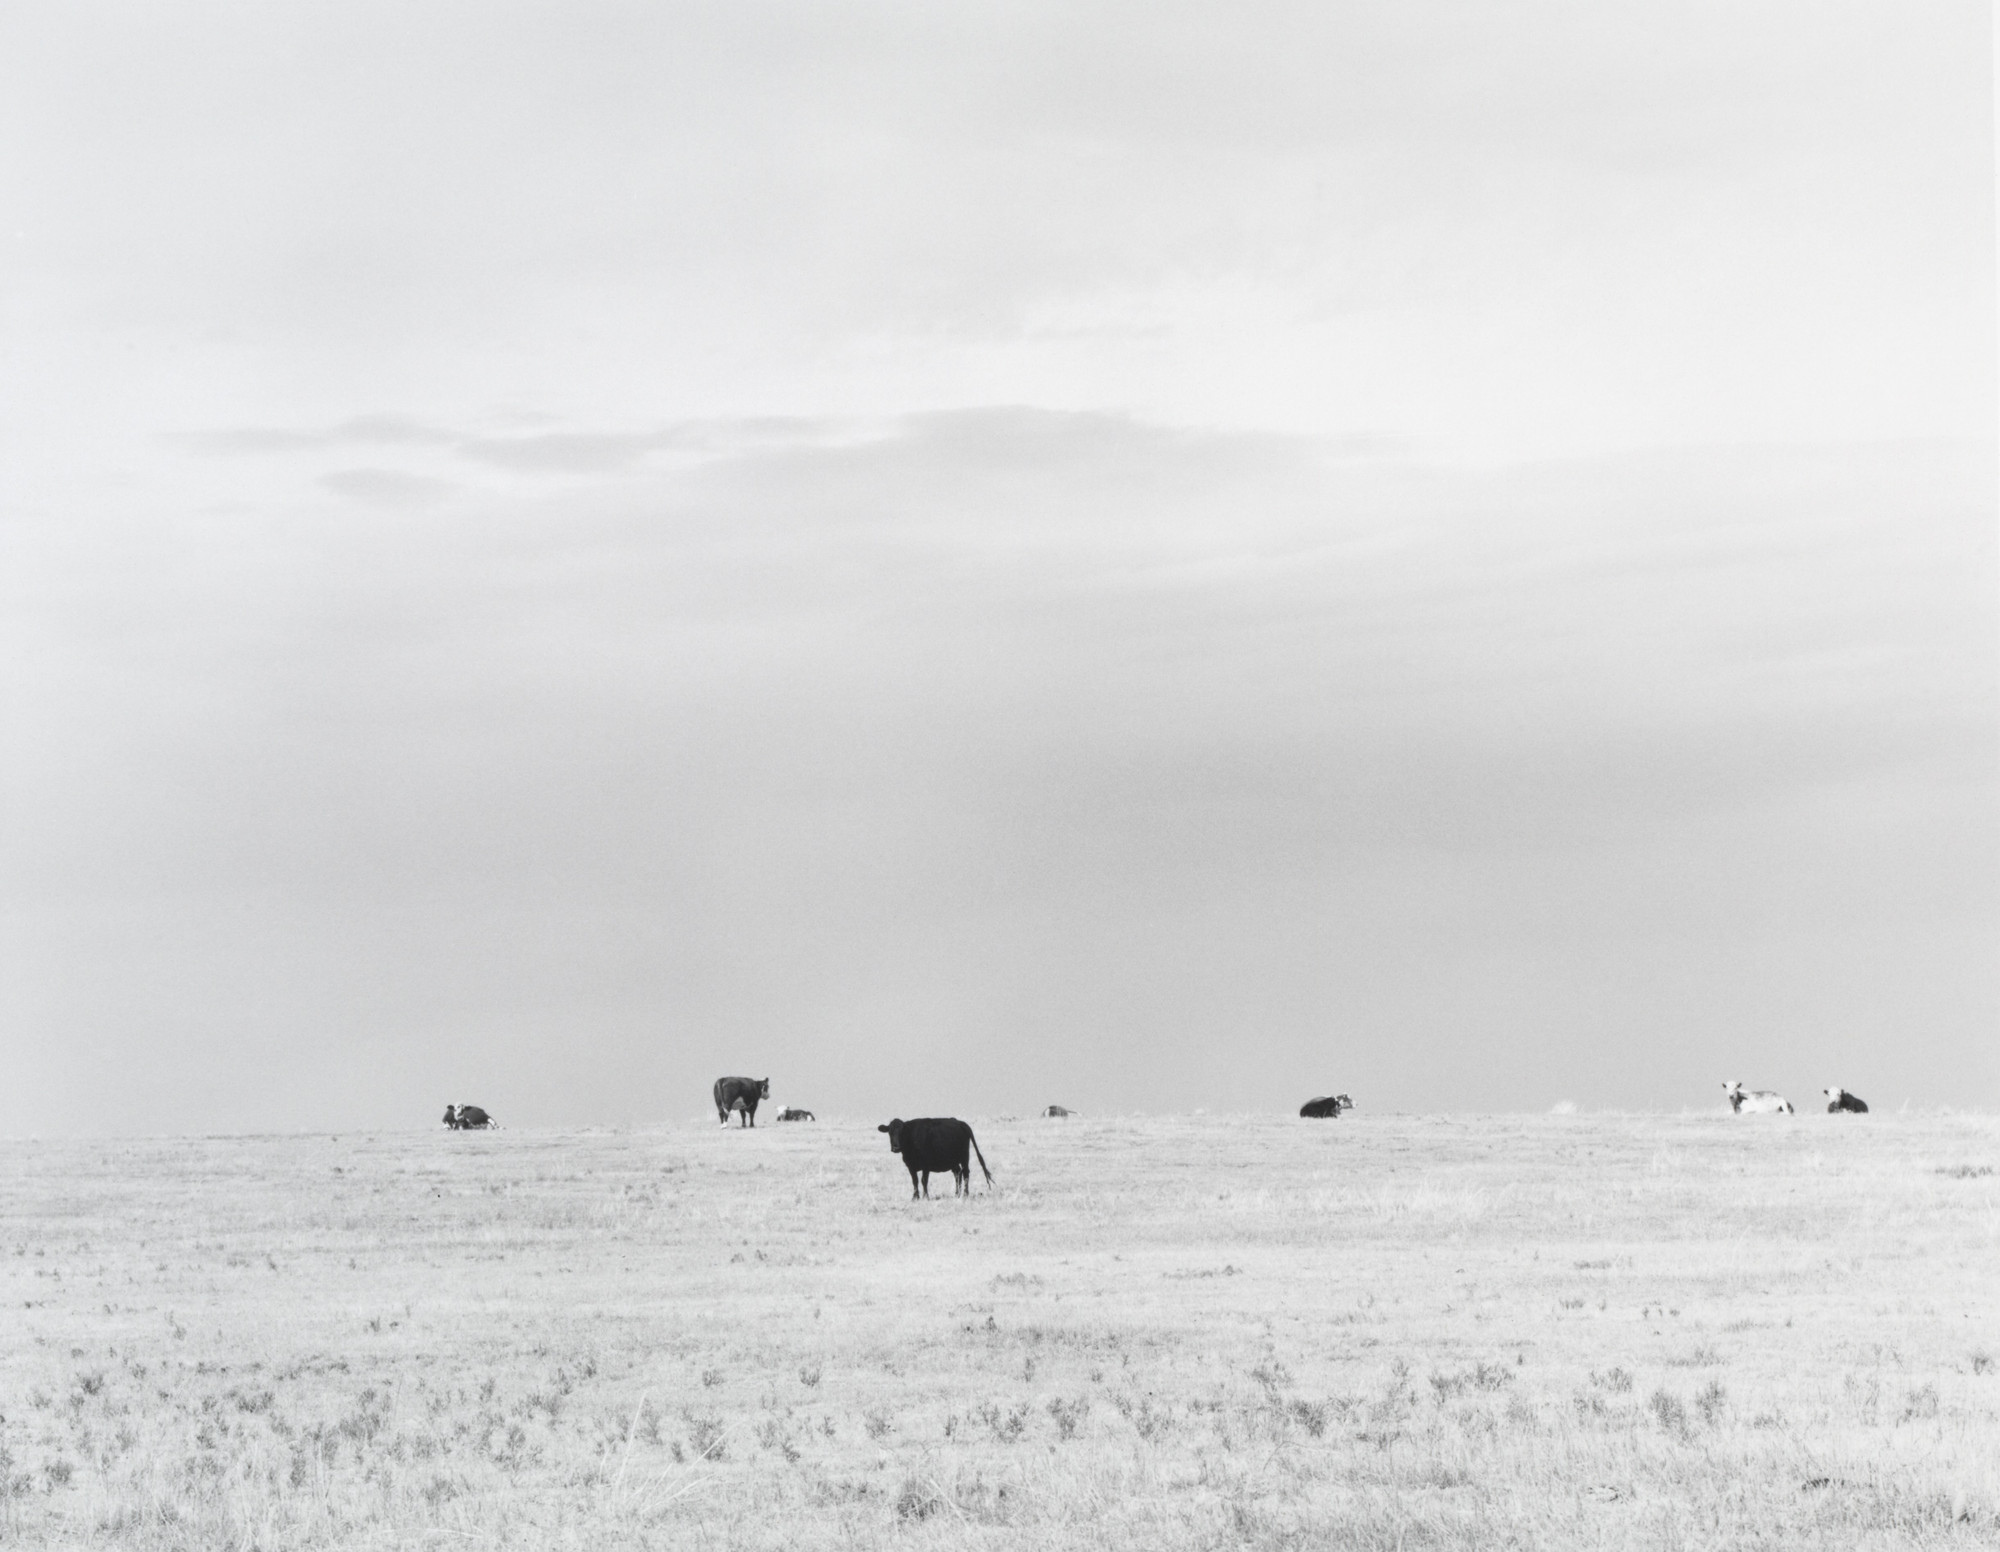 Robert Adams. North of Briggsdale, Colorado. 1973